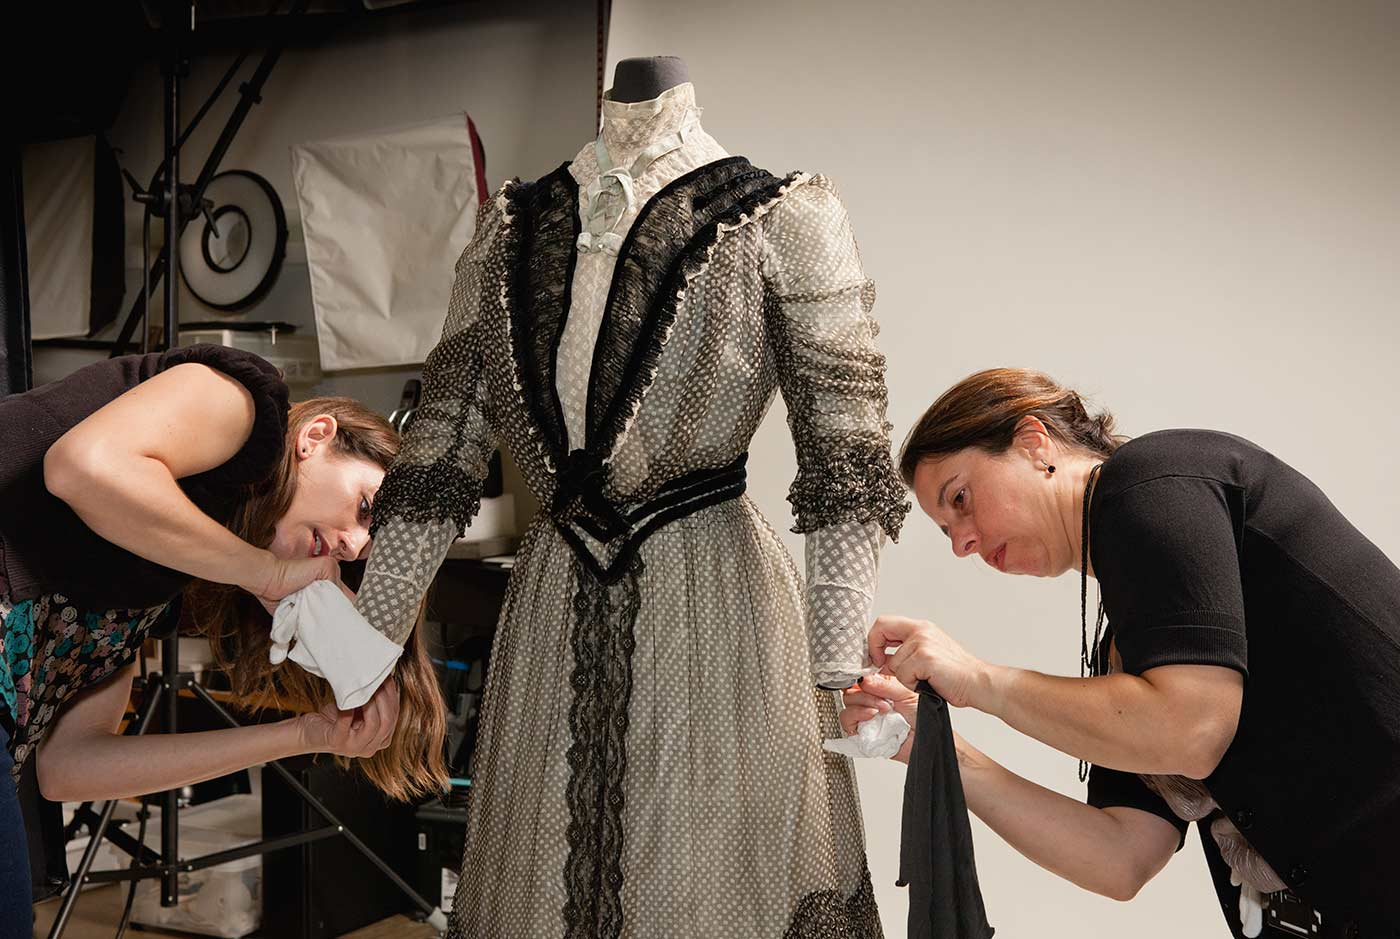 Two conservators are working on a dress.